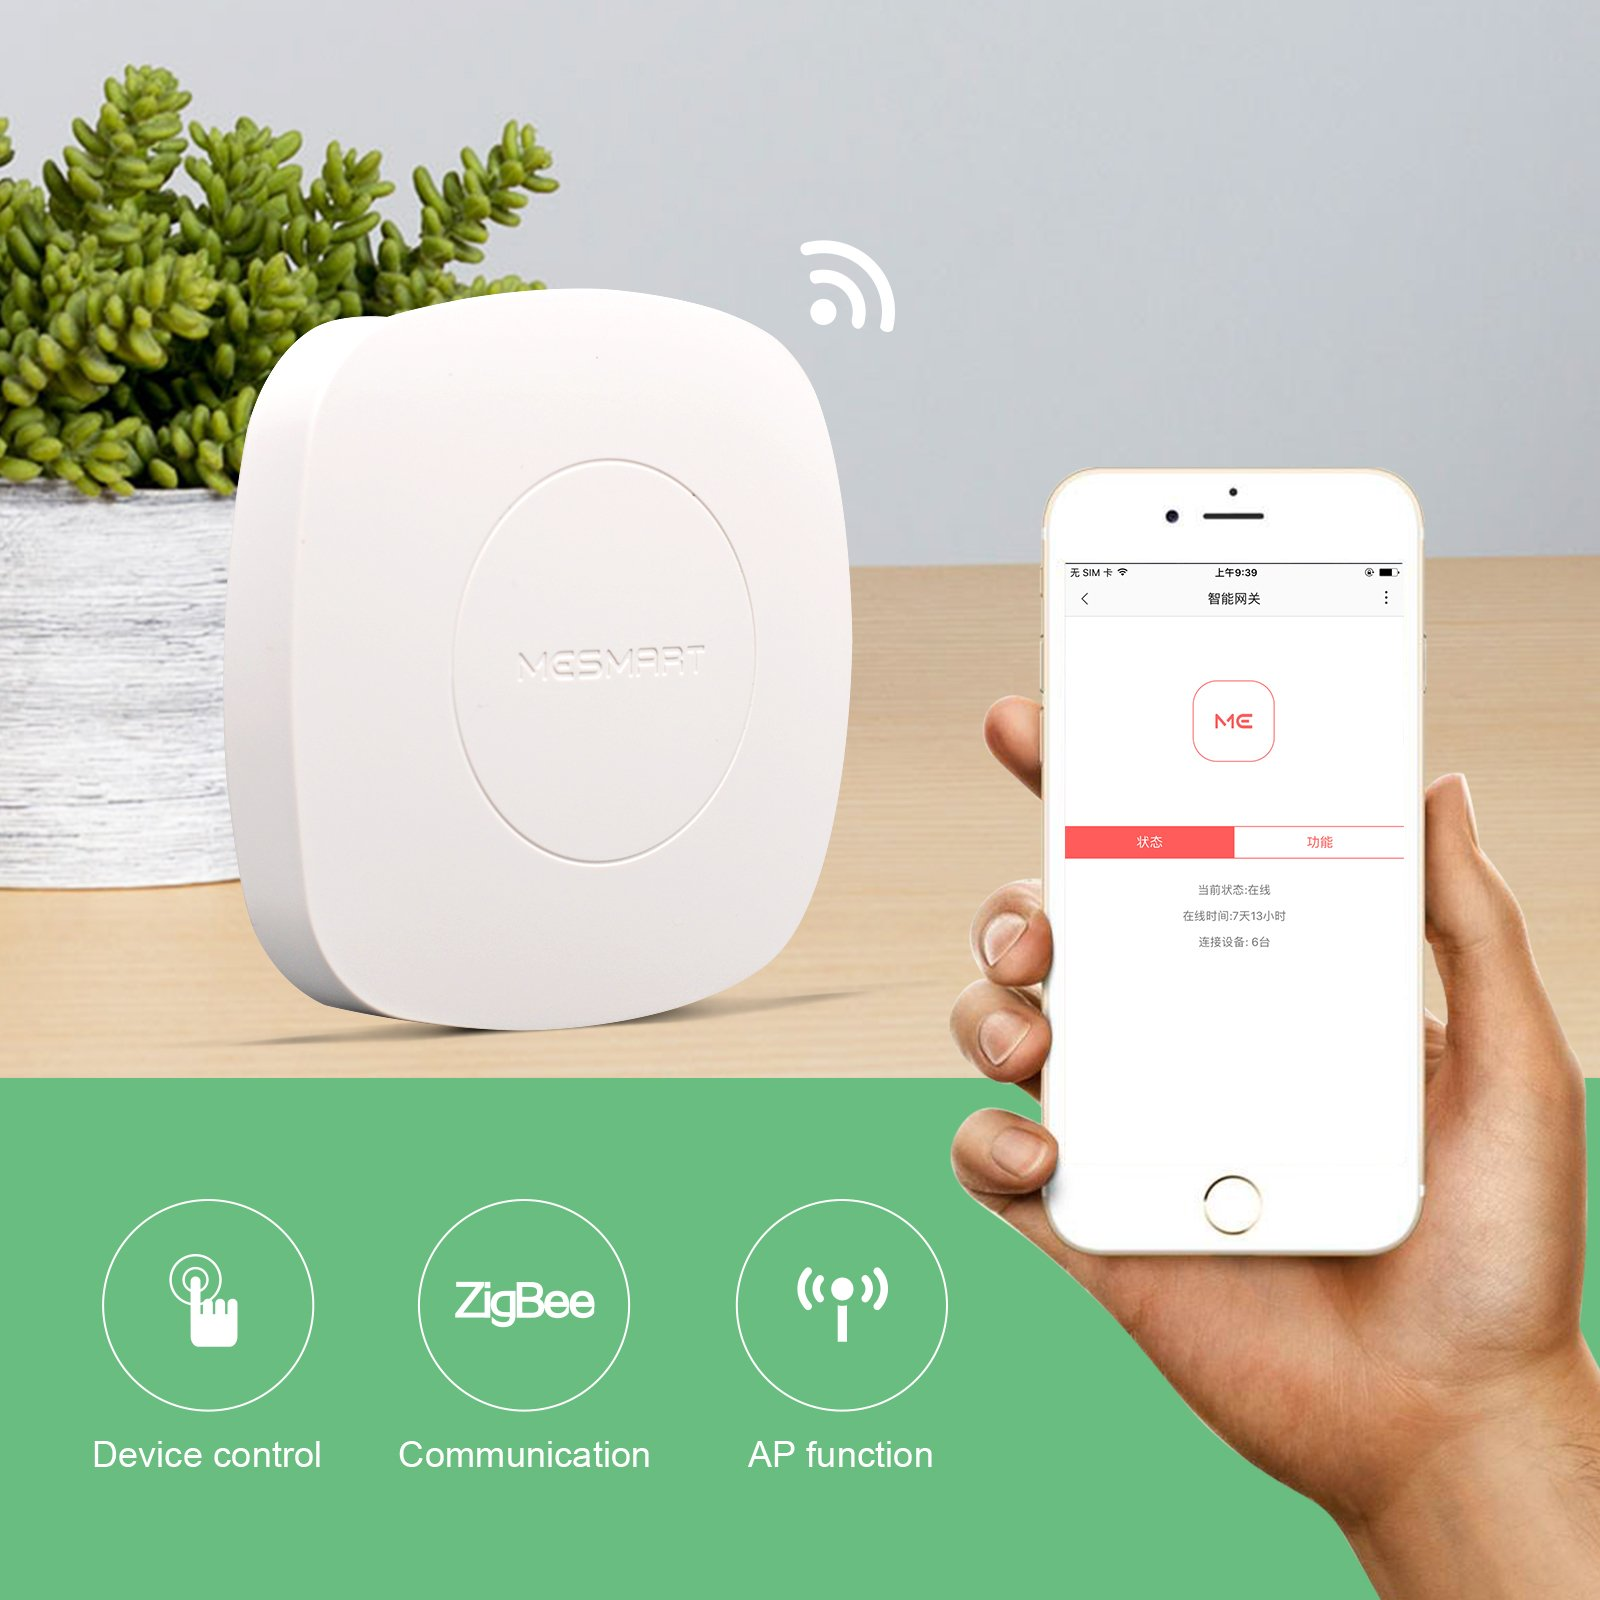 MESMART Wireless Connected Smart Home Hub Controller Secuirty Automation System Brain Center Zigbee Compatible with Amazon Alexa by MESMART (Image #6)